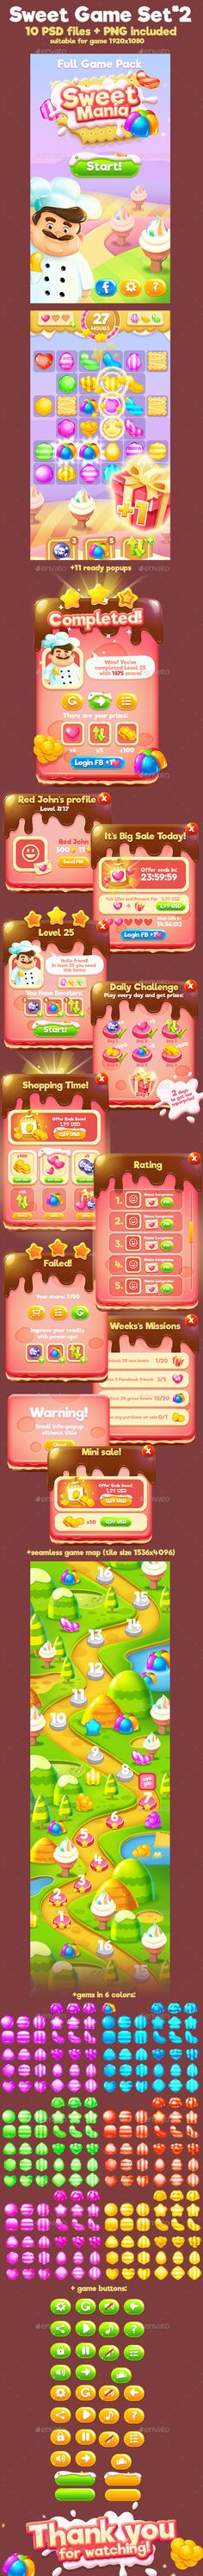 Sweet Match-3 Full Game Pack - Game Kits Game Assets